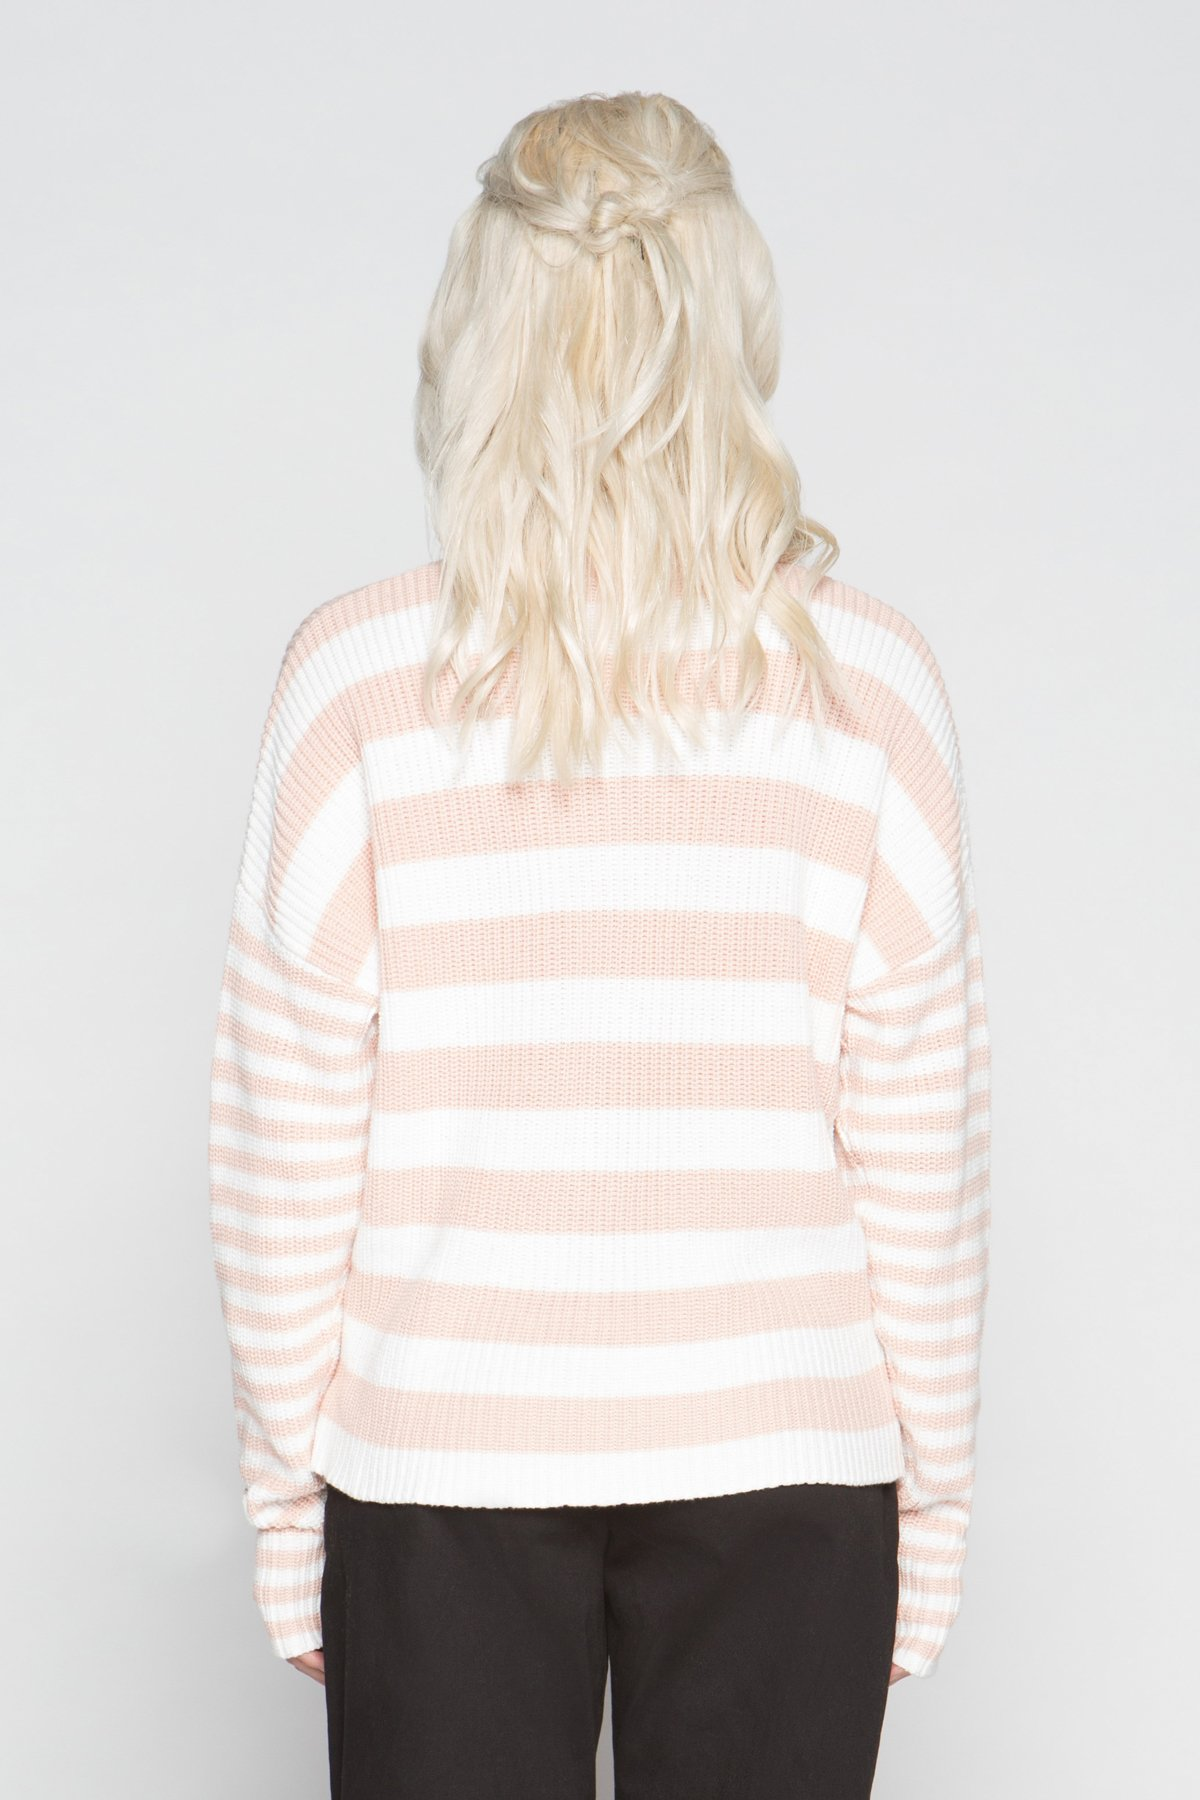 Pink_and_White_Sweater-1.jpg